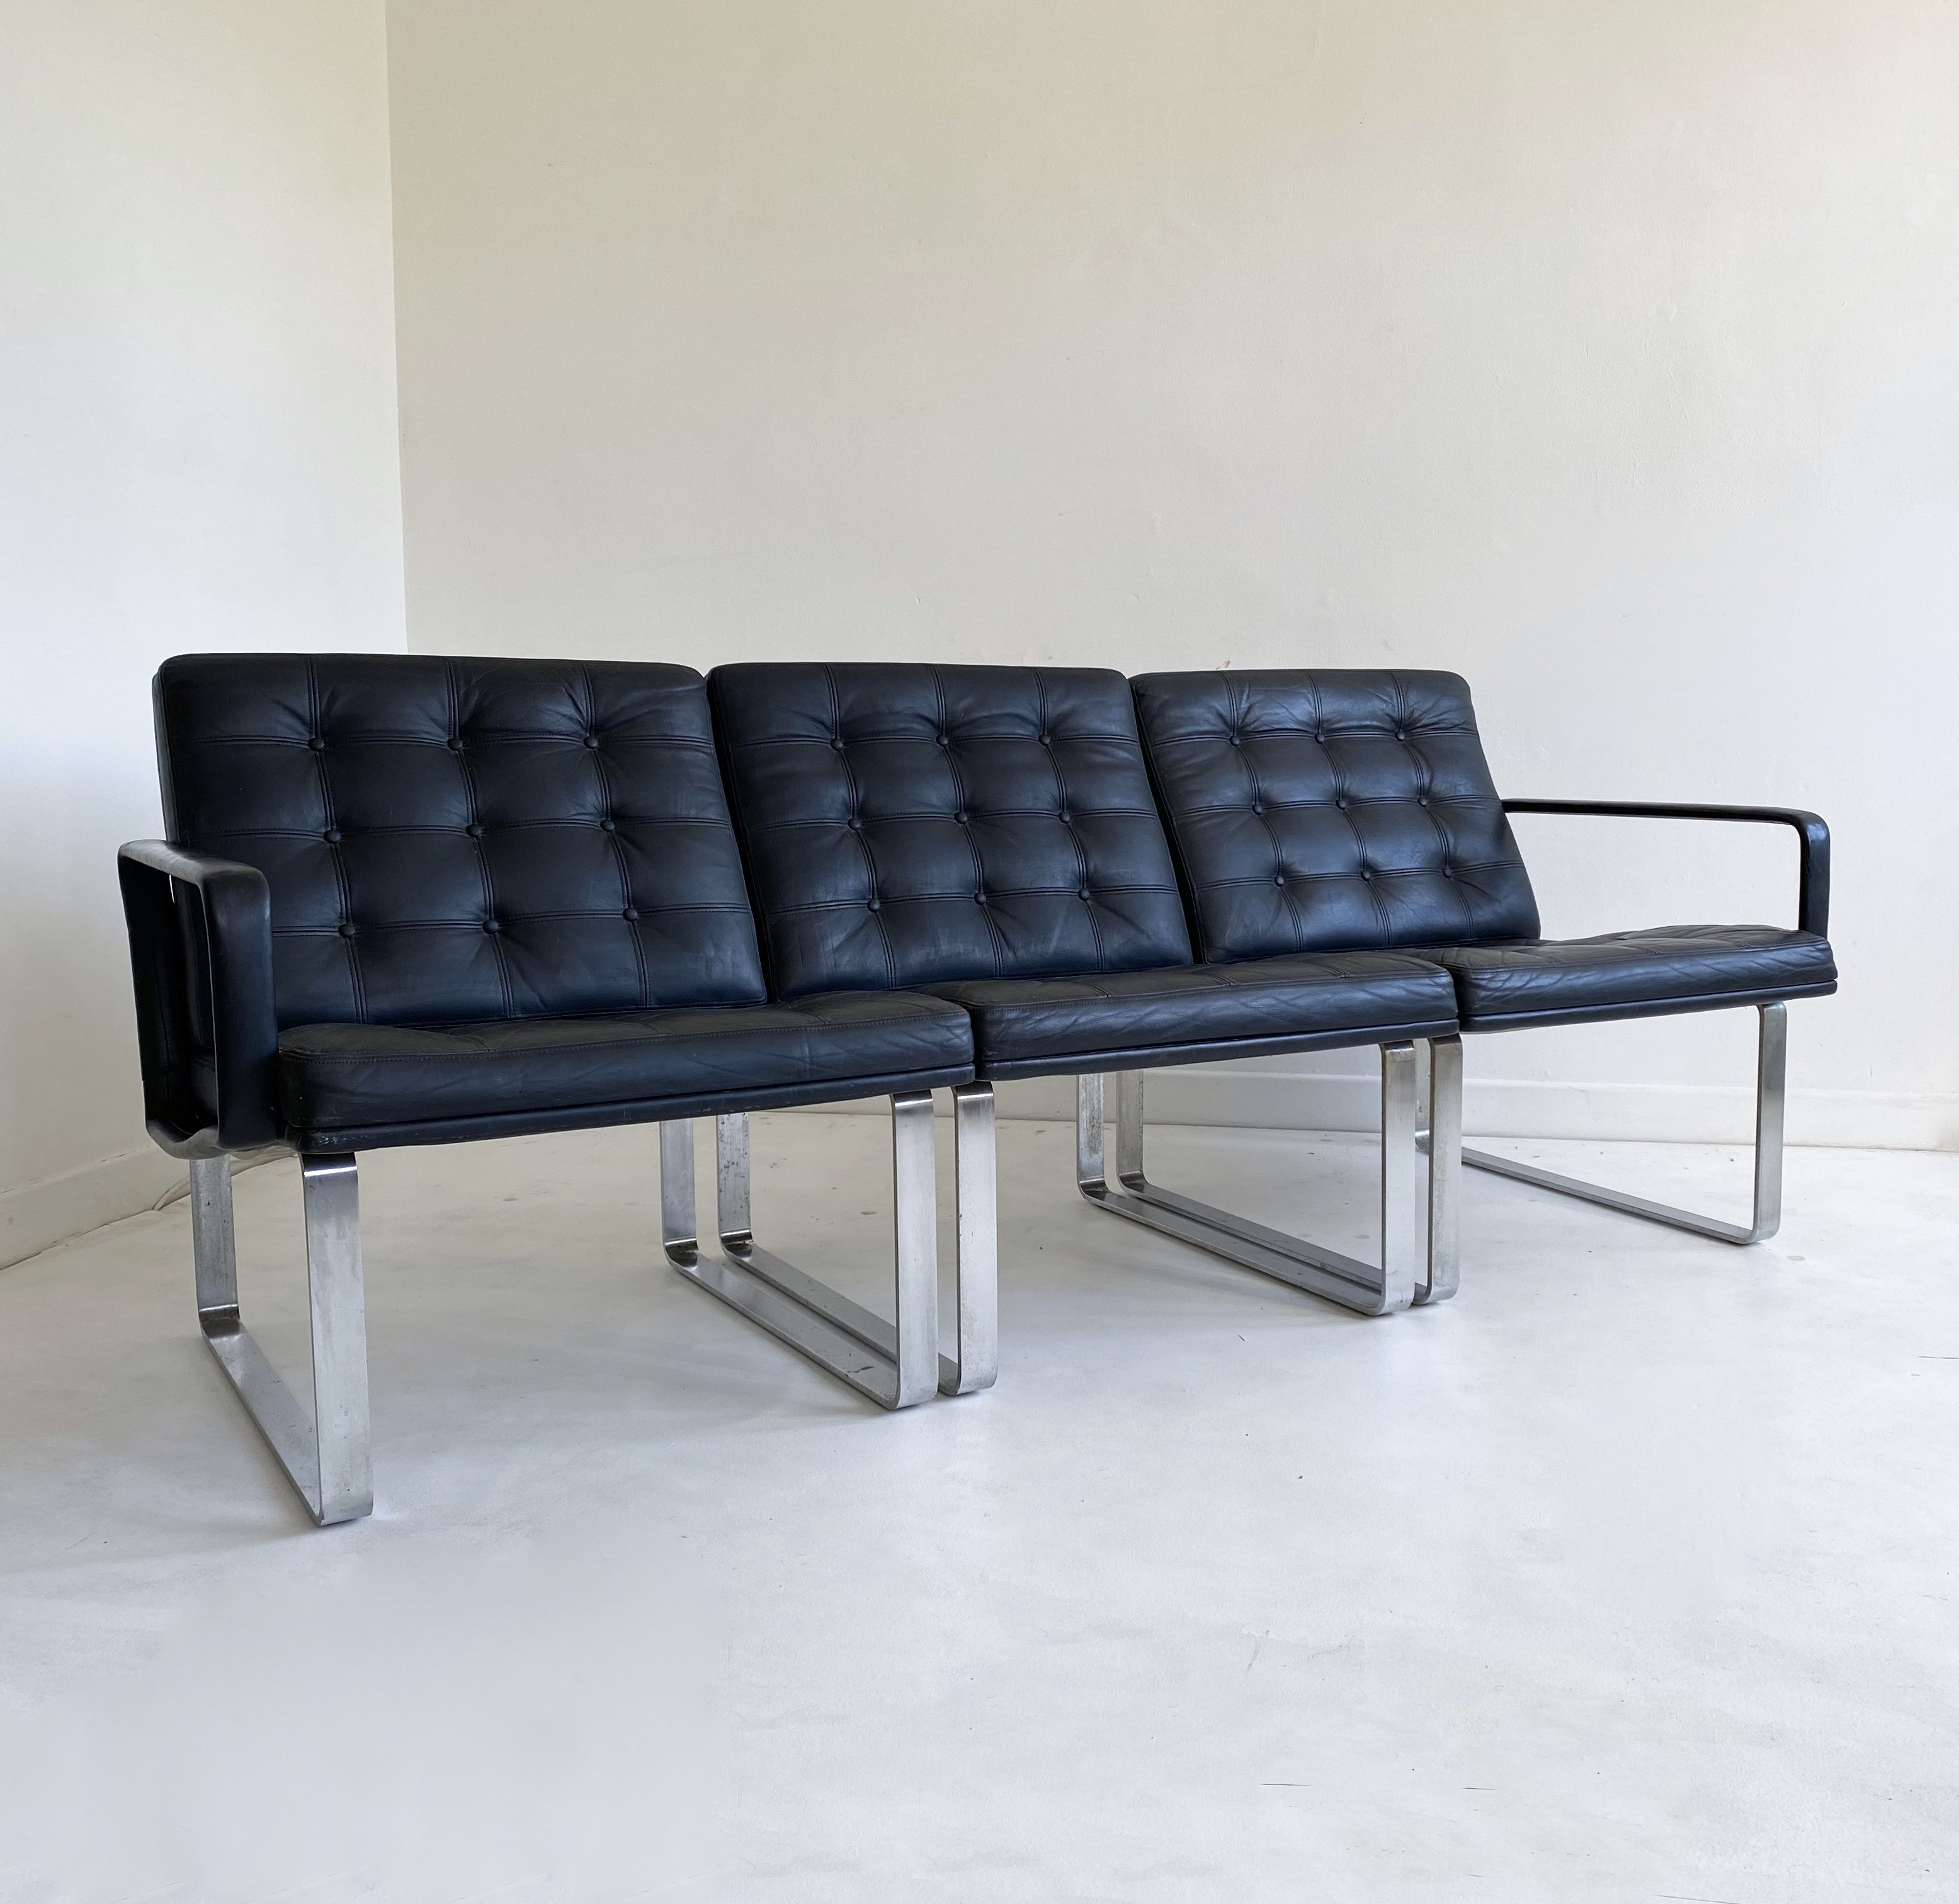 Mid Century Black Leather Modular Sofa By Gjerlov Knudsen Lind For Cado C 1960 128873